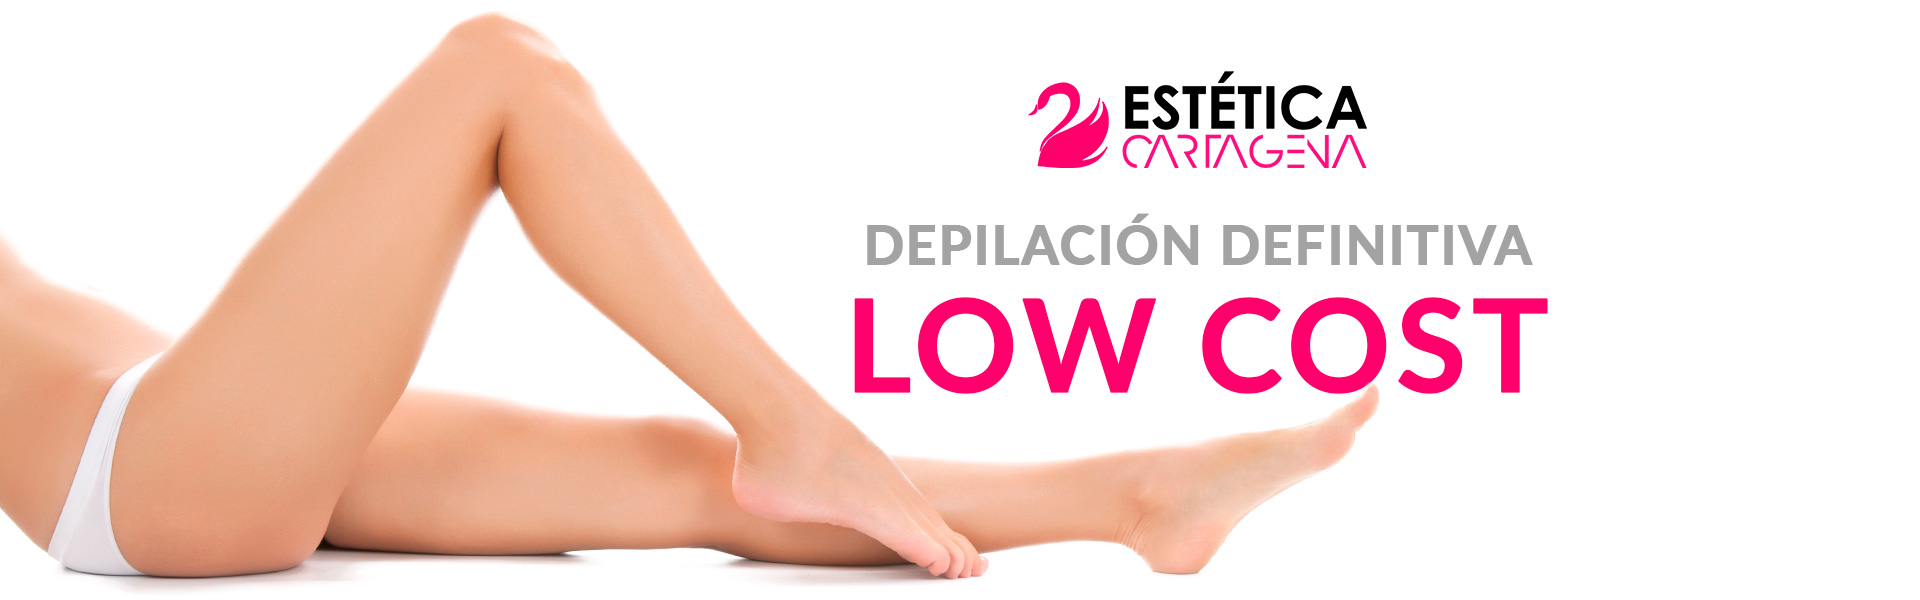 Depilación definitiva low cost